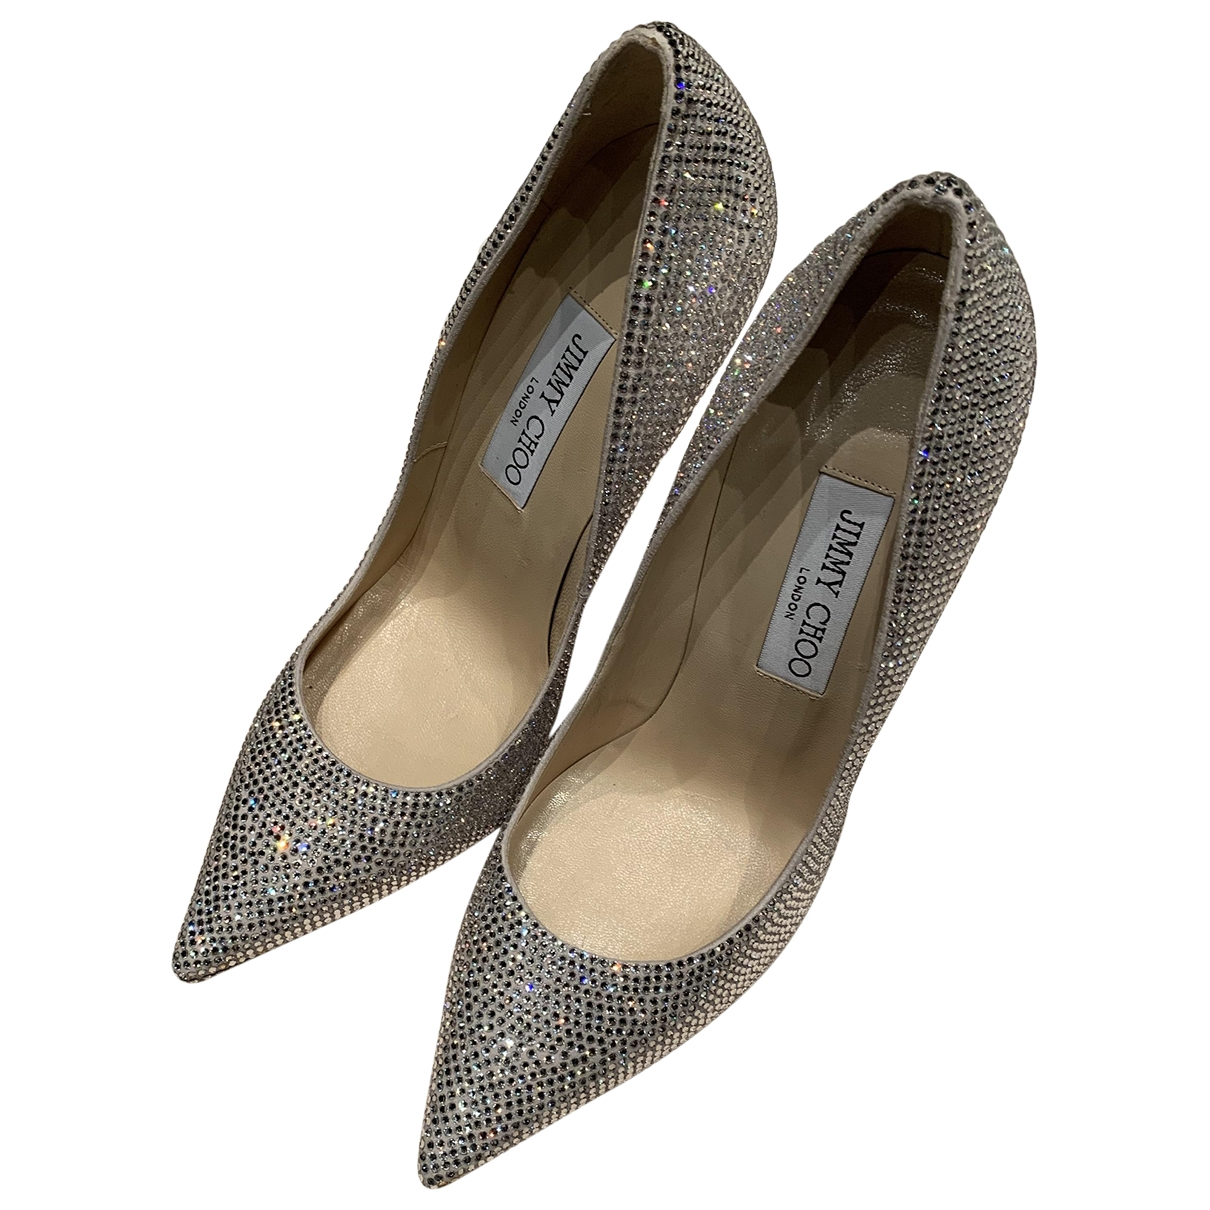 Jimmy Choo Anouk Silver Glitter Heels for Women 38.5 EU